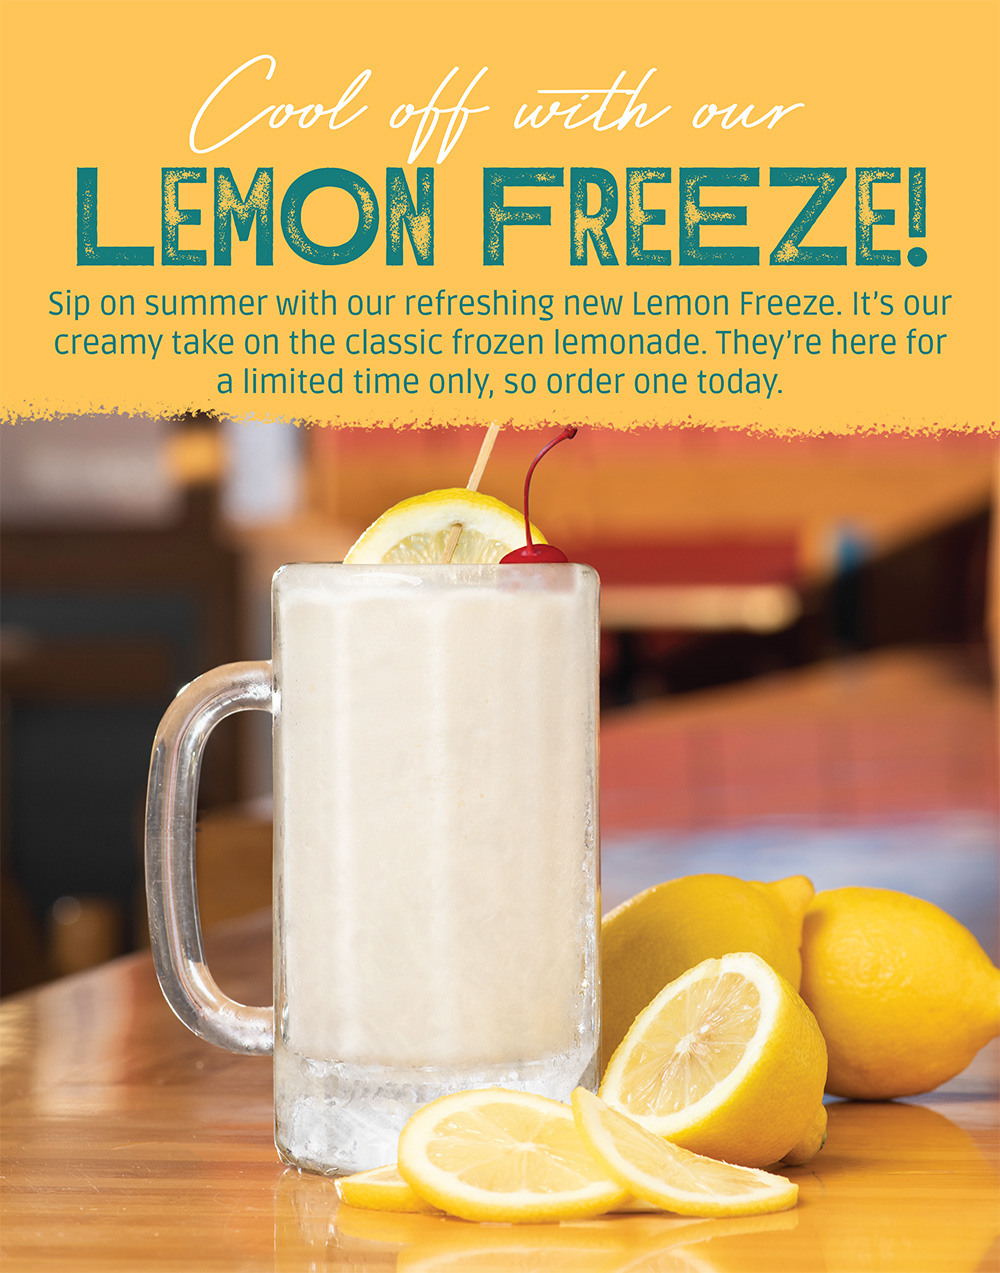 Lemon Freeze